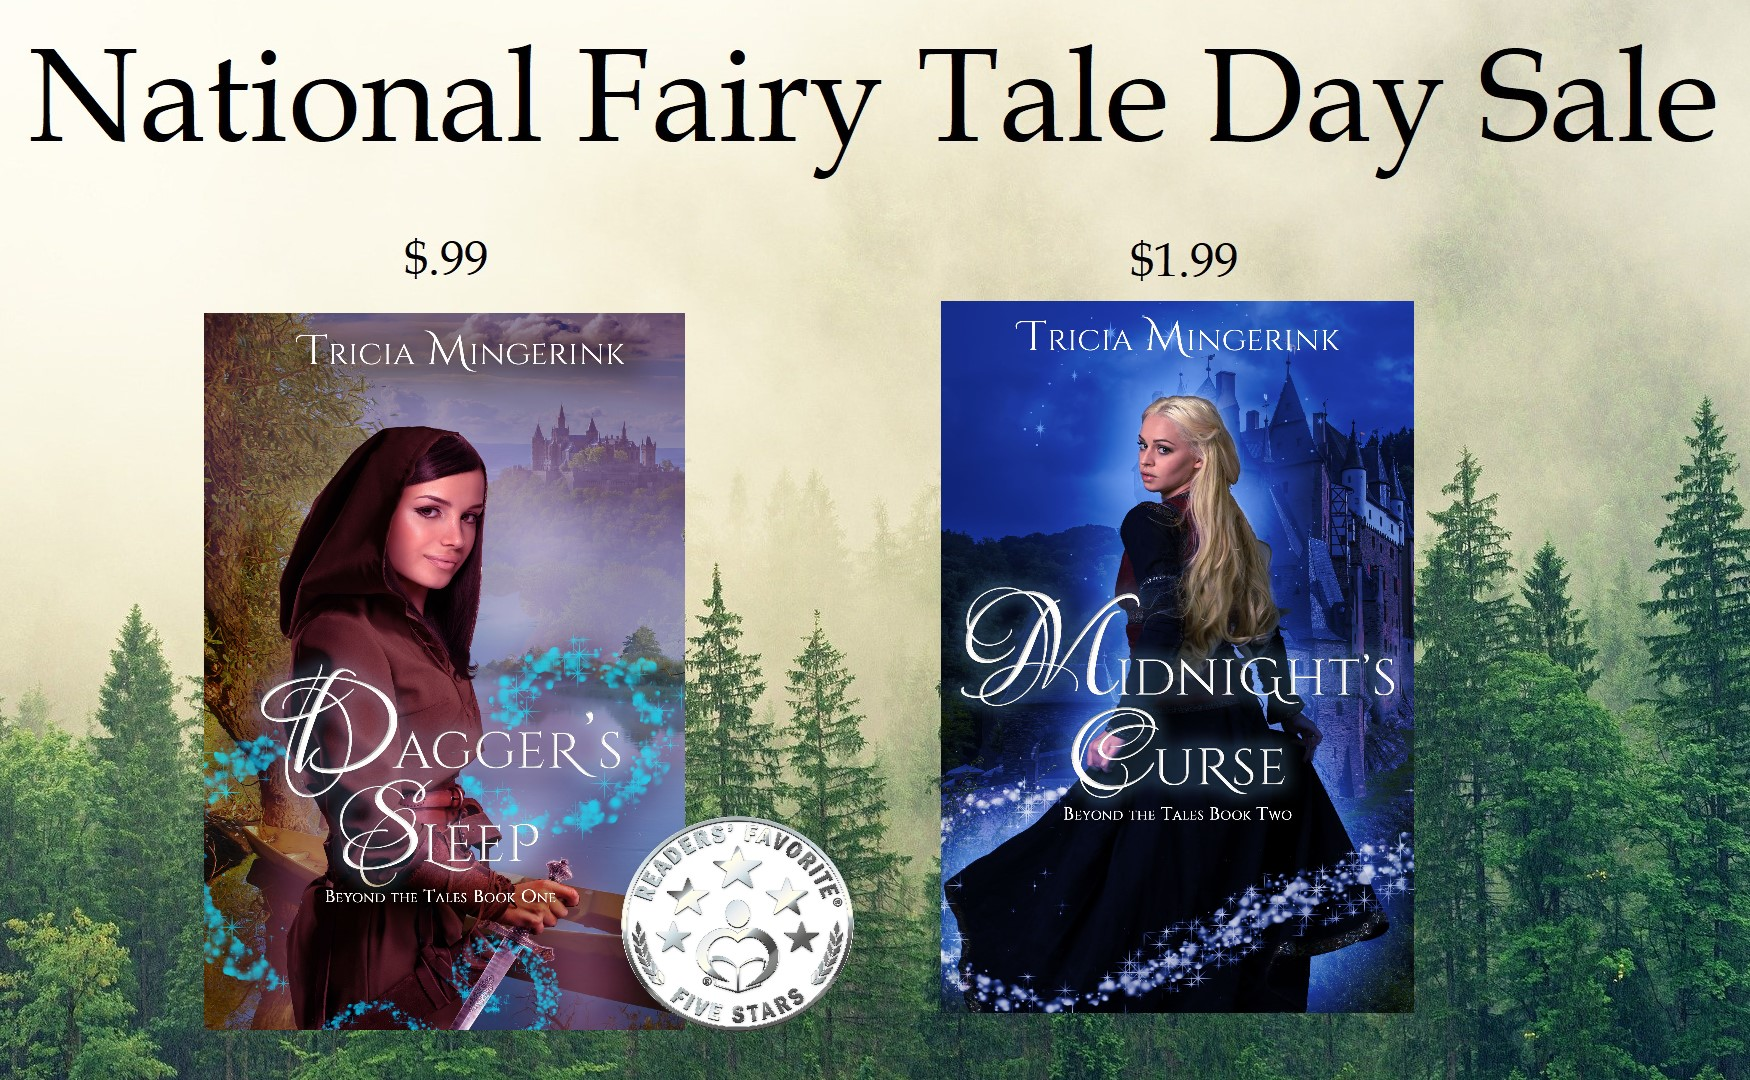 National Fairy Tale Day Sale